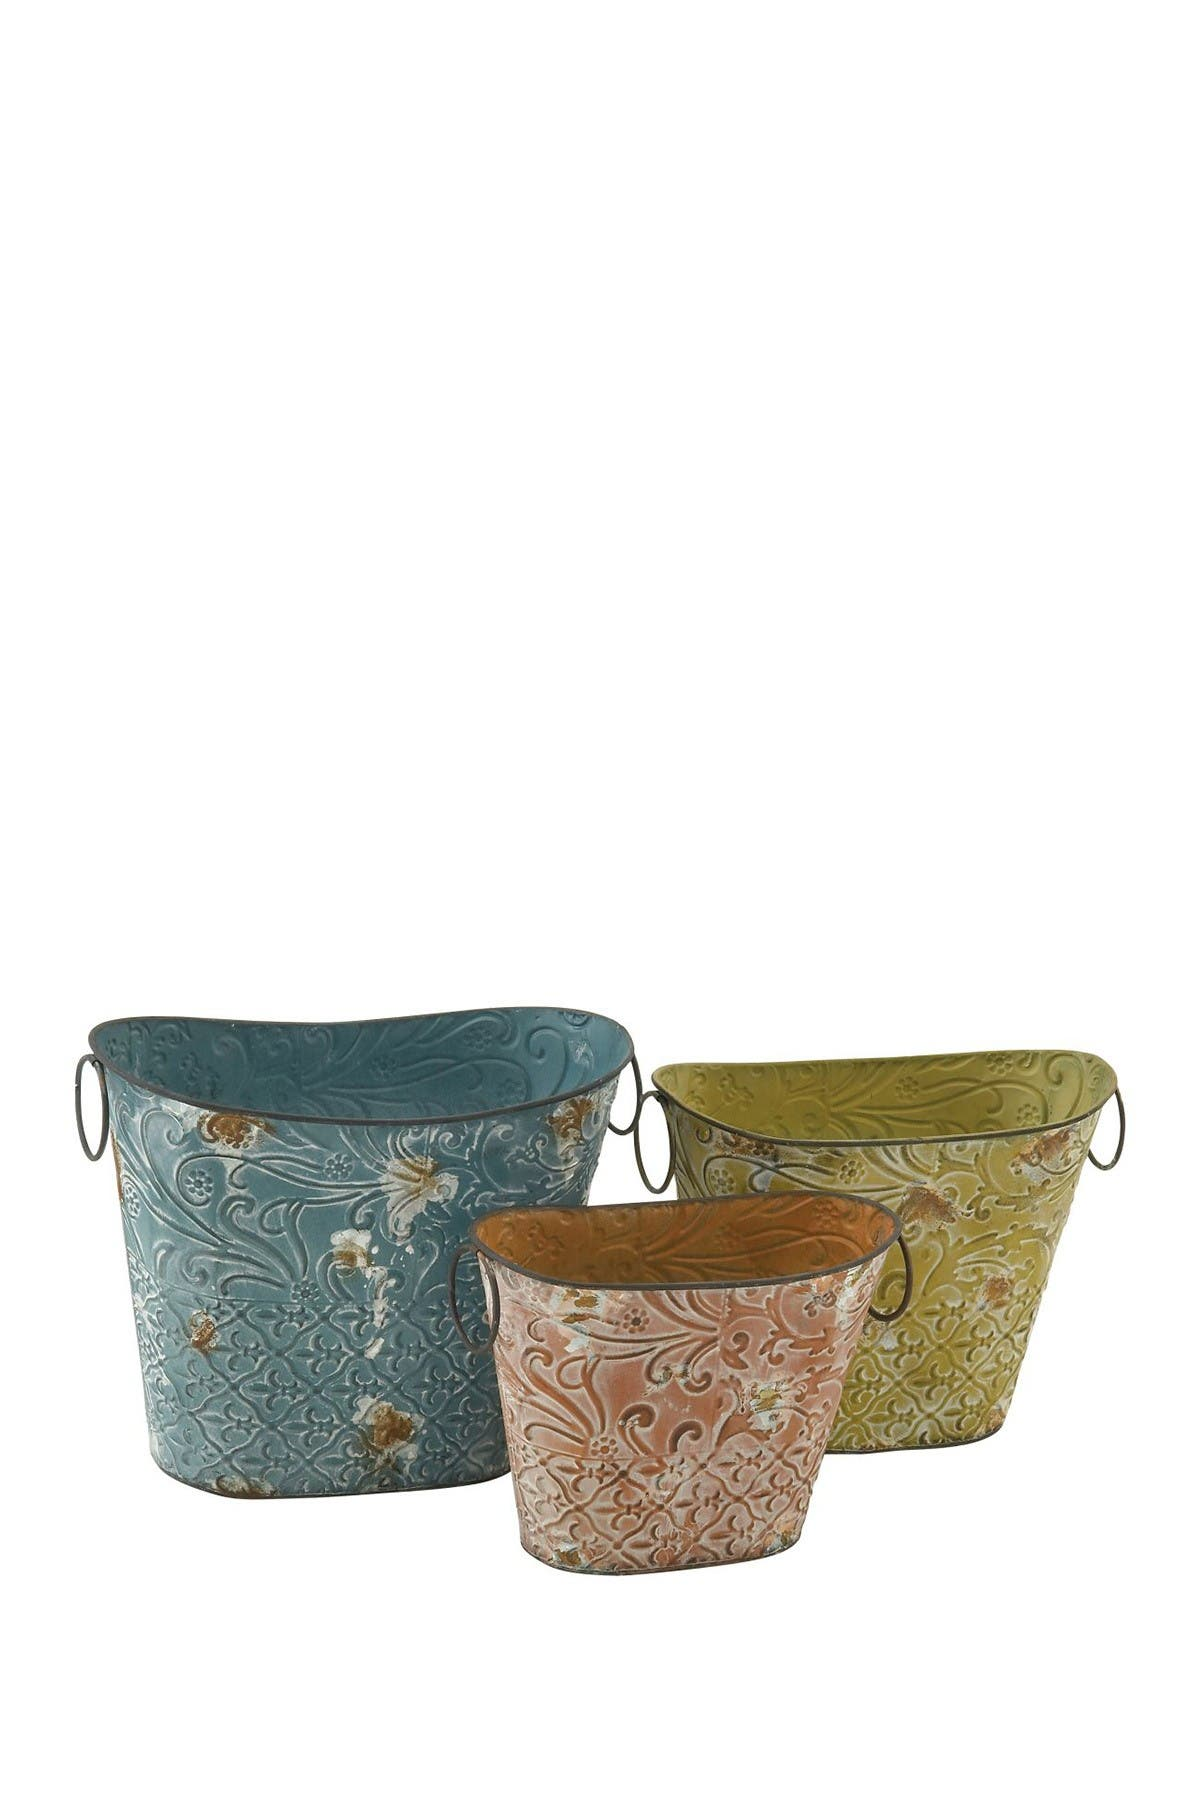 Image of Willow Row Brown Farmhouse Oval Basket Planter - Set of 3